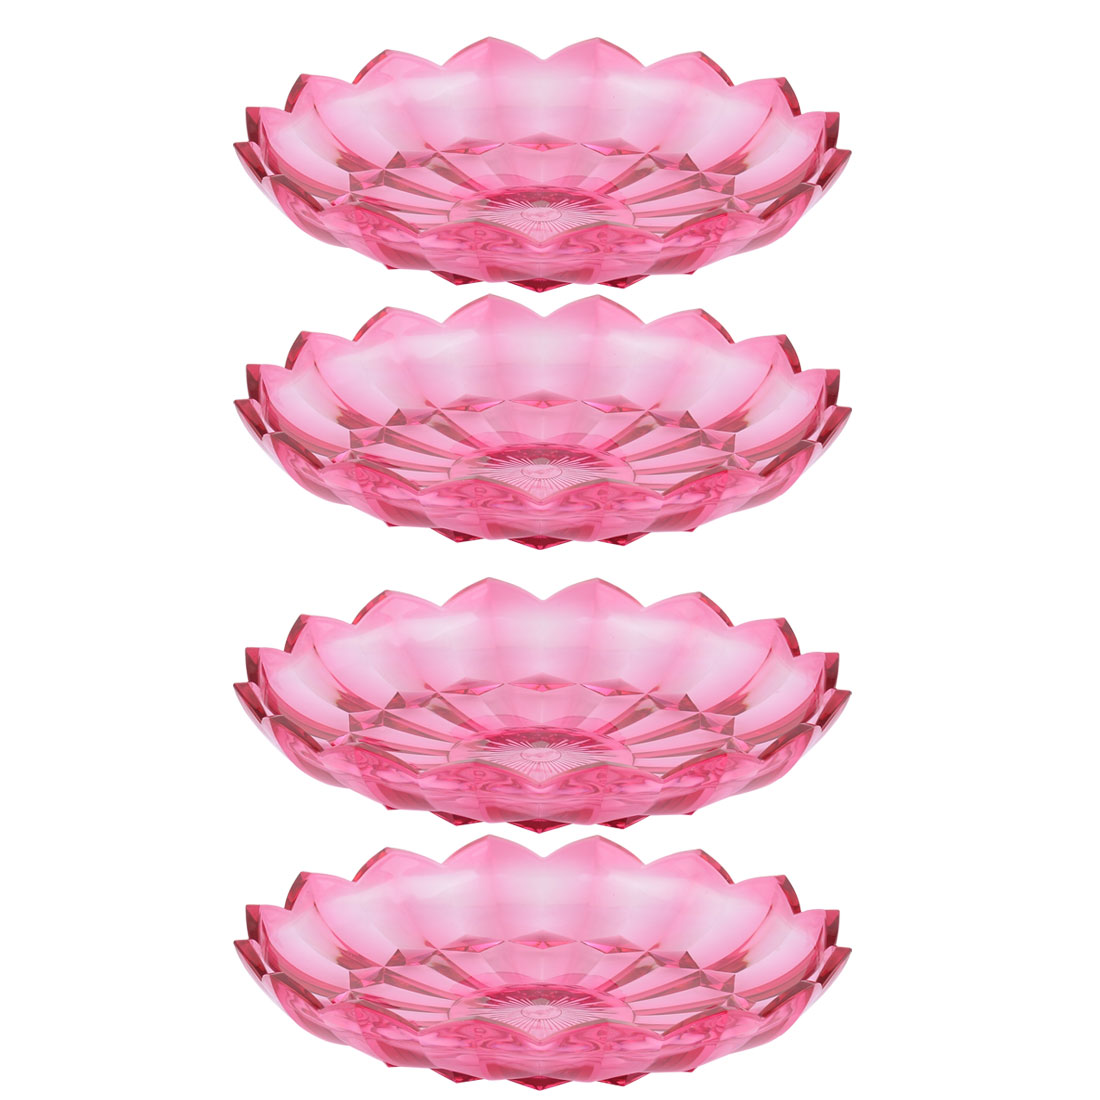 Unique BargainsHome Plastic Flower Shaped Snack Candy Vegetable Fruit Tray Plate Fuchsia 4pcs